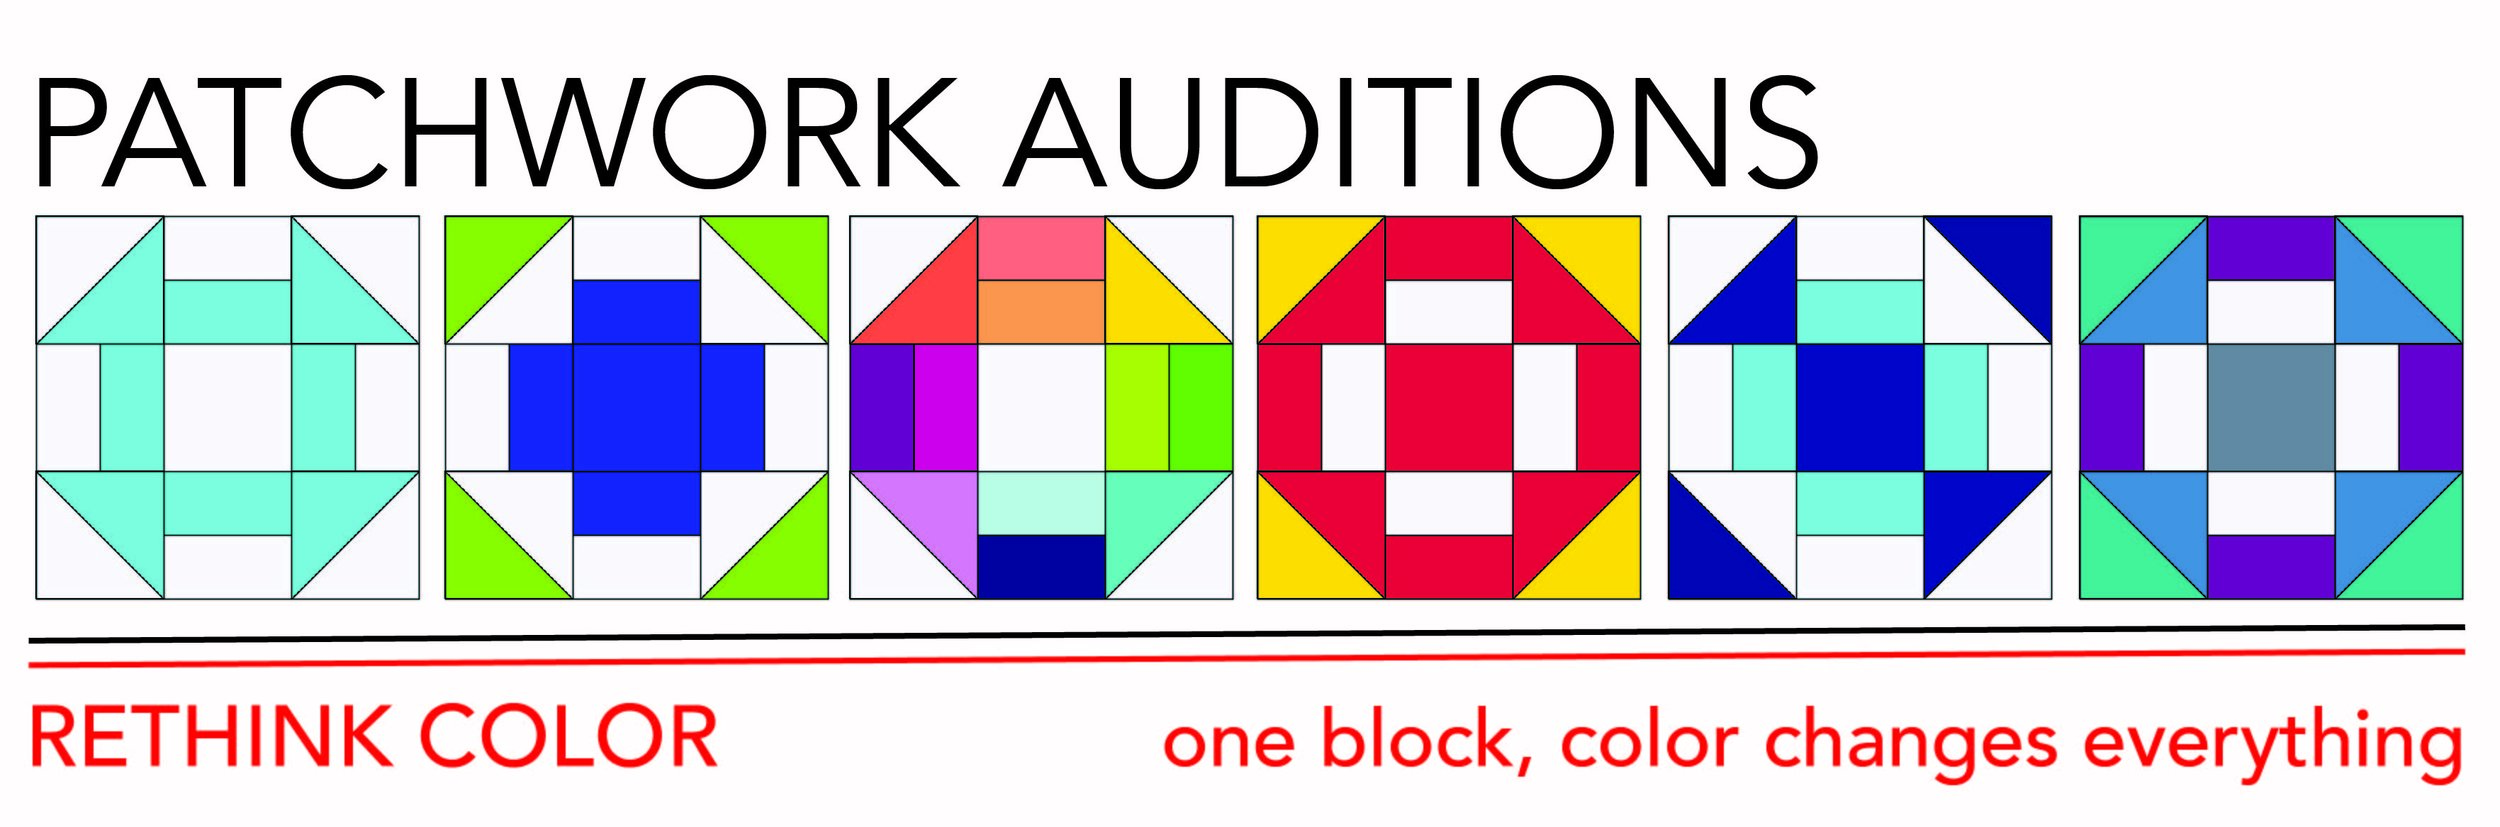 Patchwork Auditions Banner Graphic.jpg